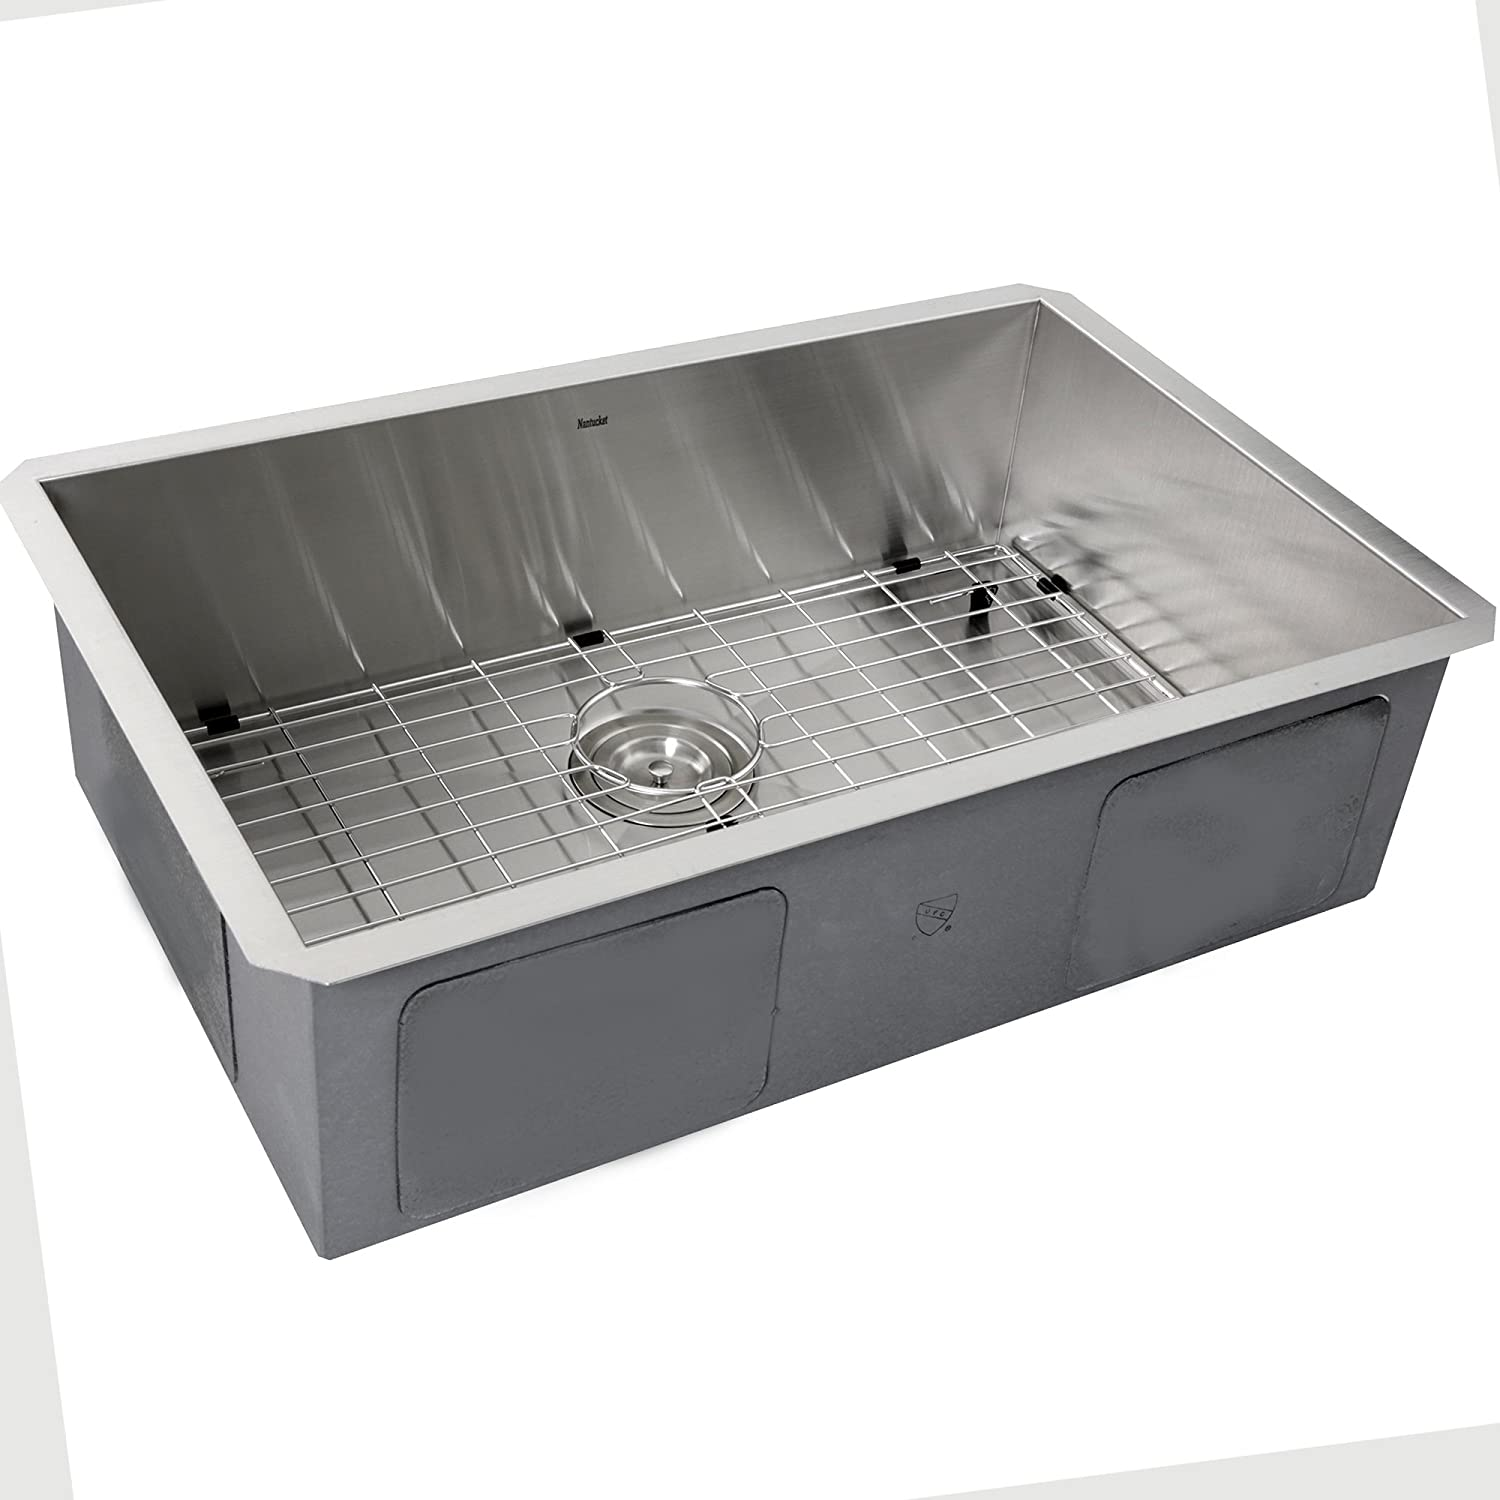 Nantucket Sinks ZR2818-16 28-Inch Pro Series Single Bowl Undermount Kitchen Sink, Stainless Steel